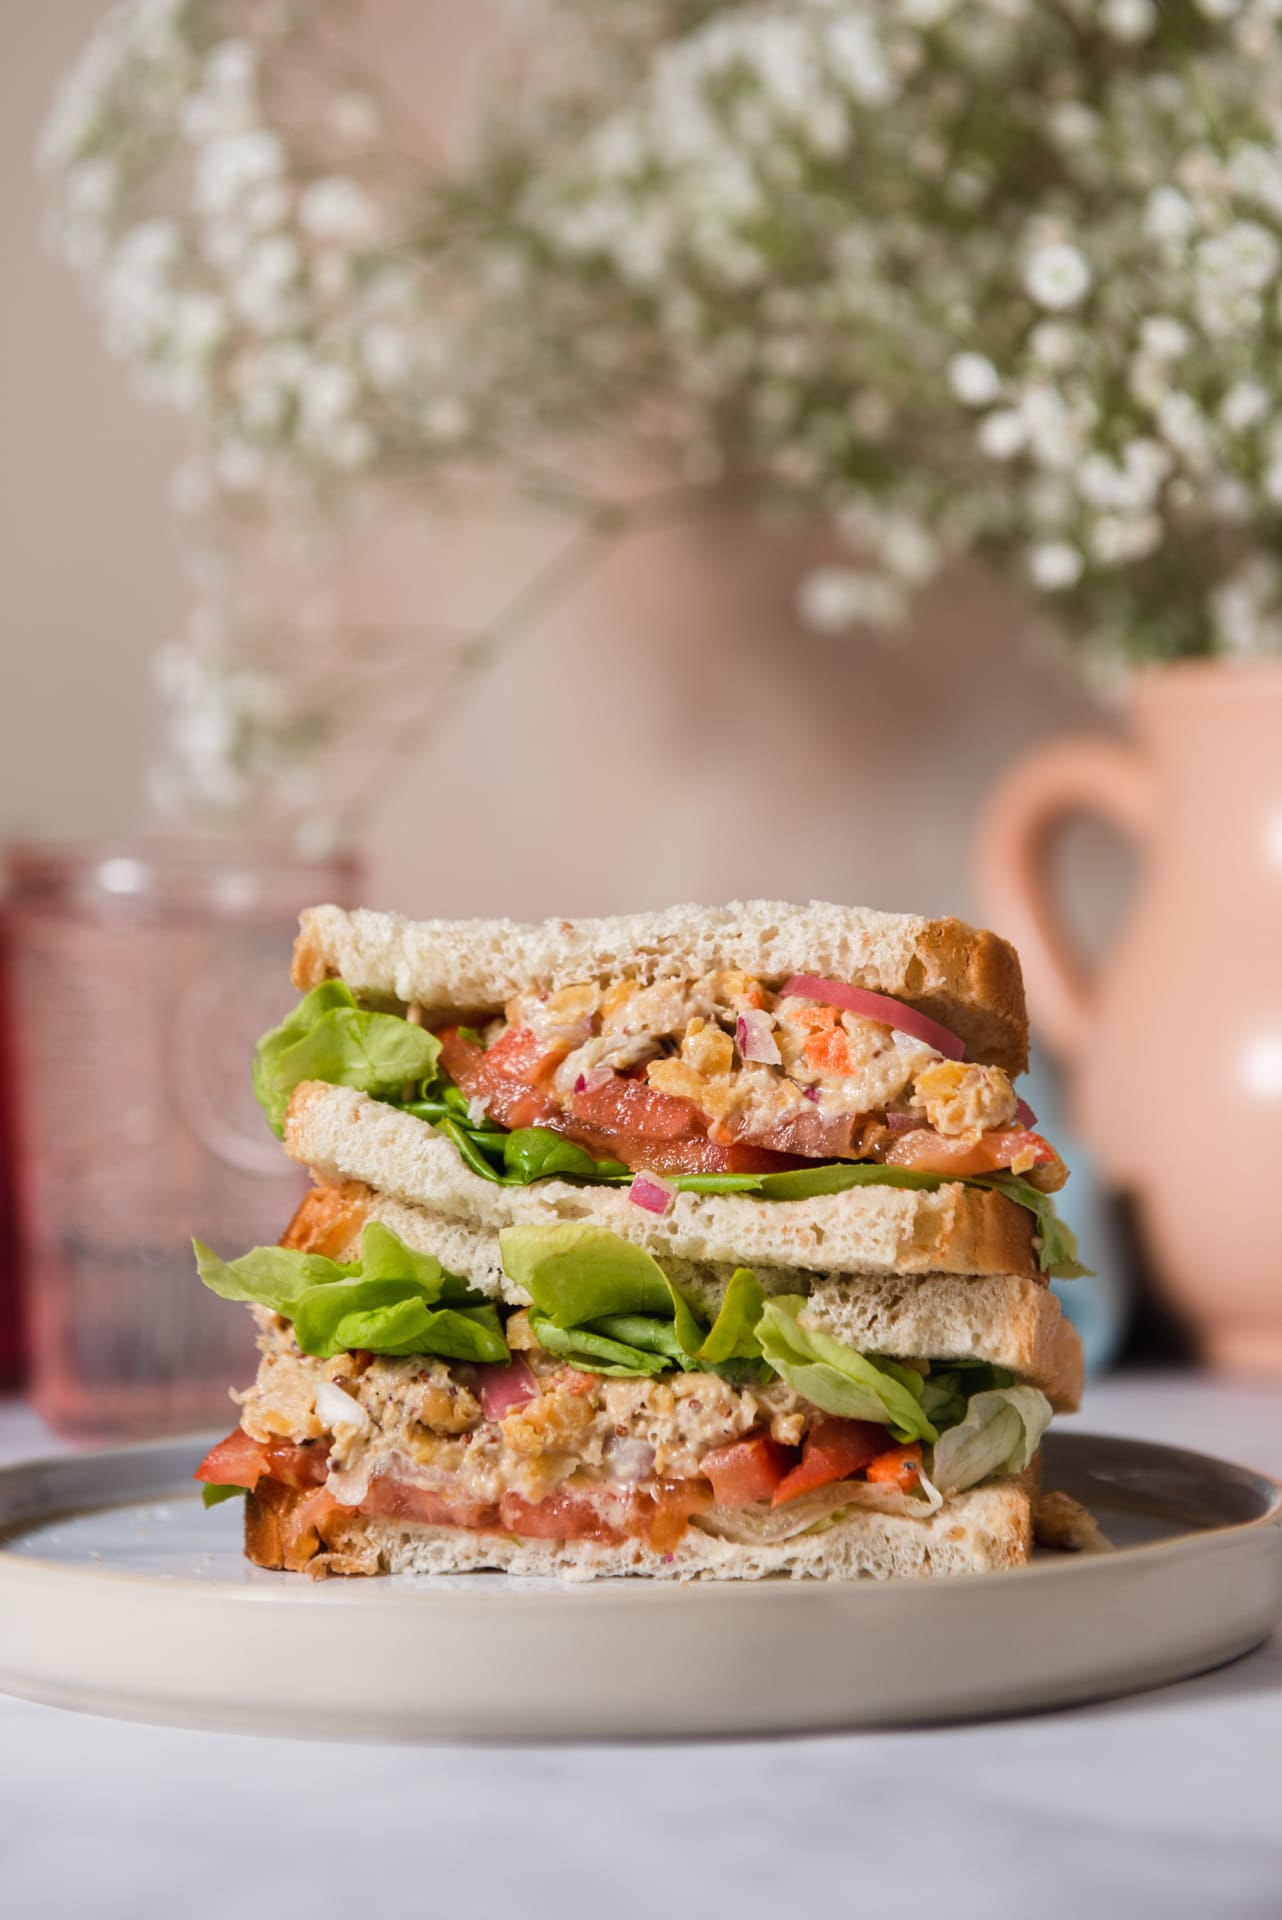 Double layered sandwich on plate with vase of flowers in the background